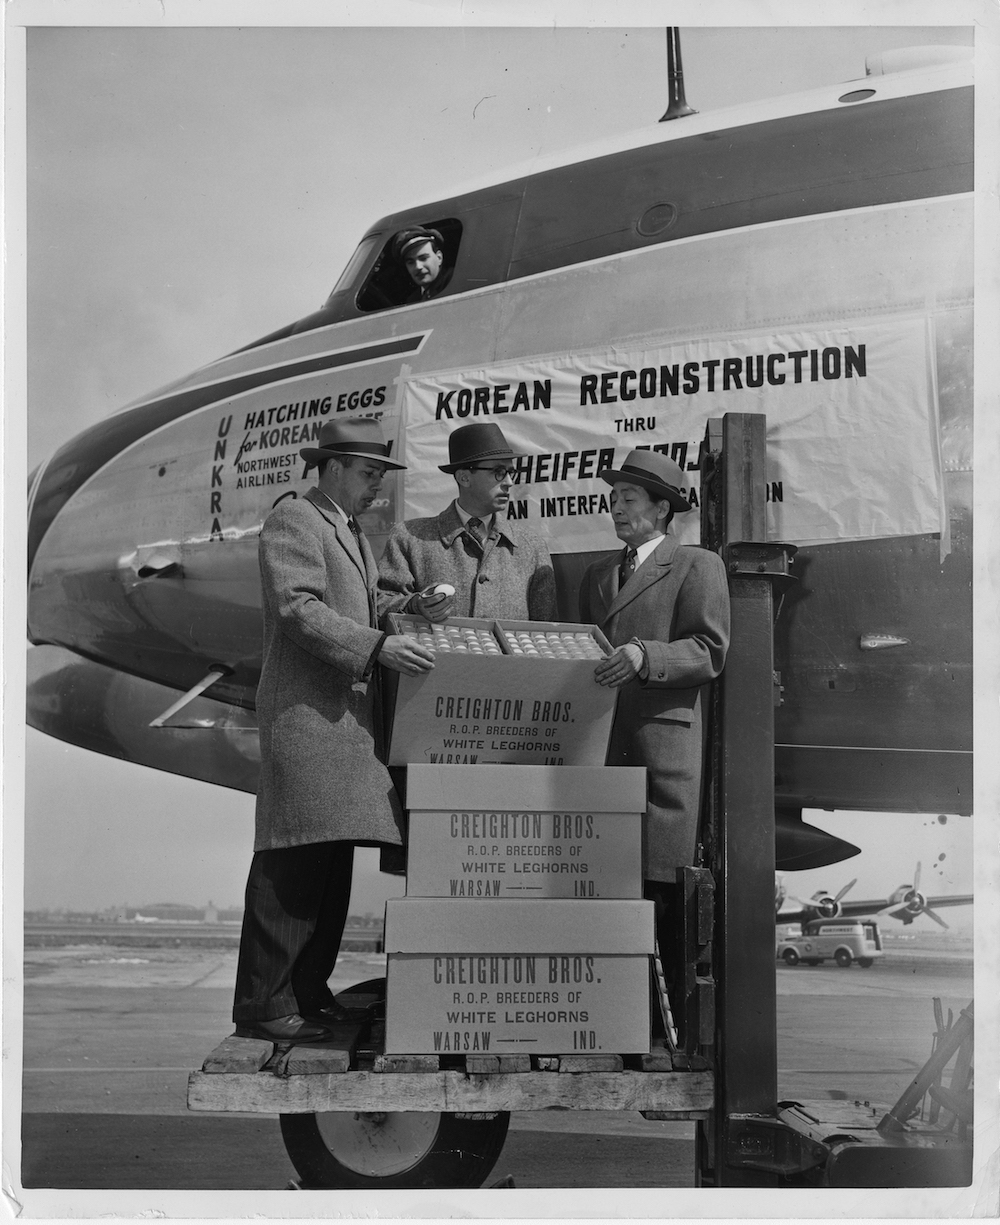 A black and white photo of three men standing by a plane, holding crates of eggs to donate.